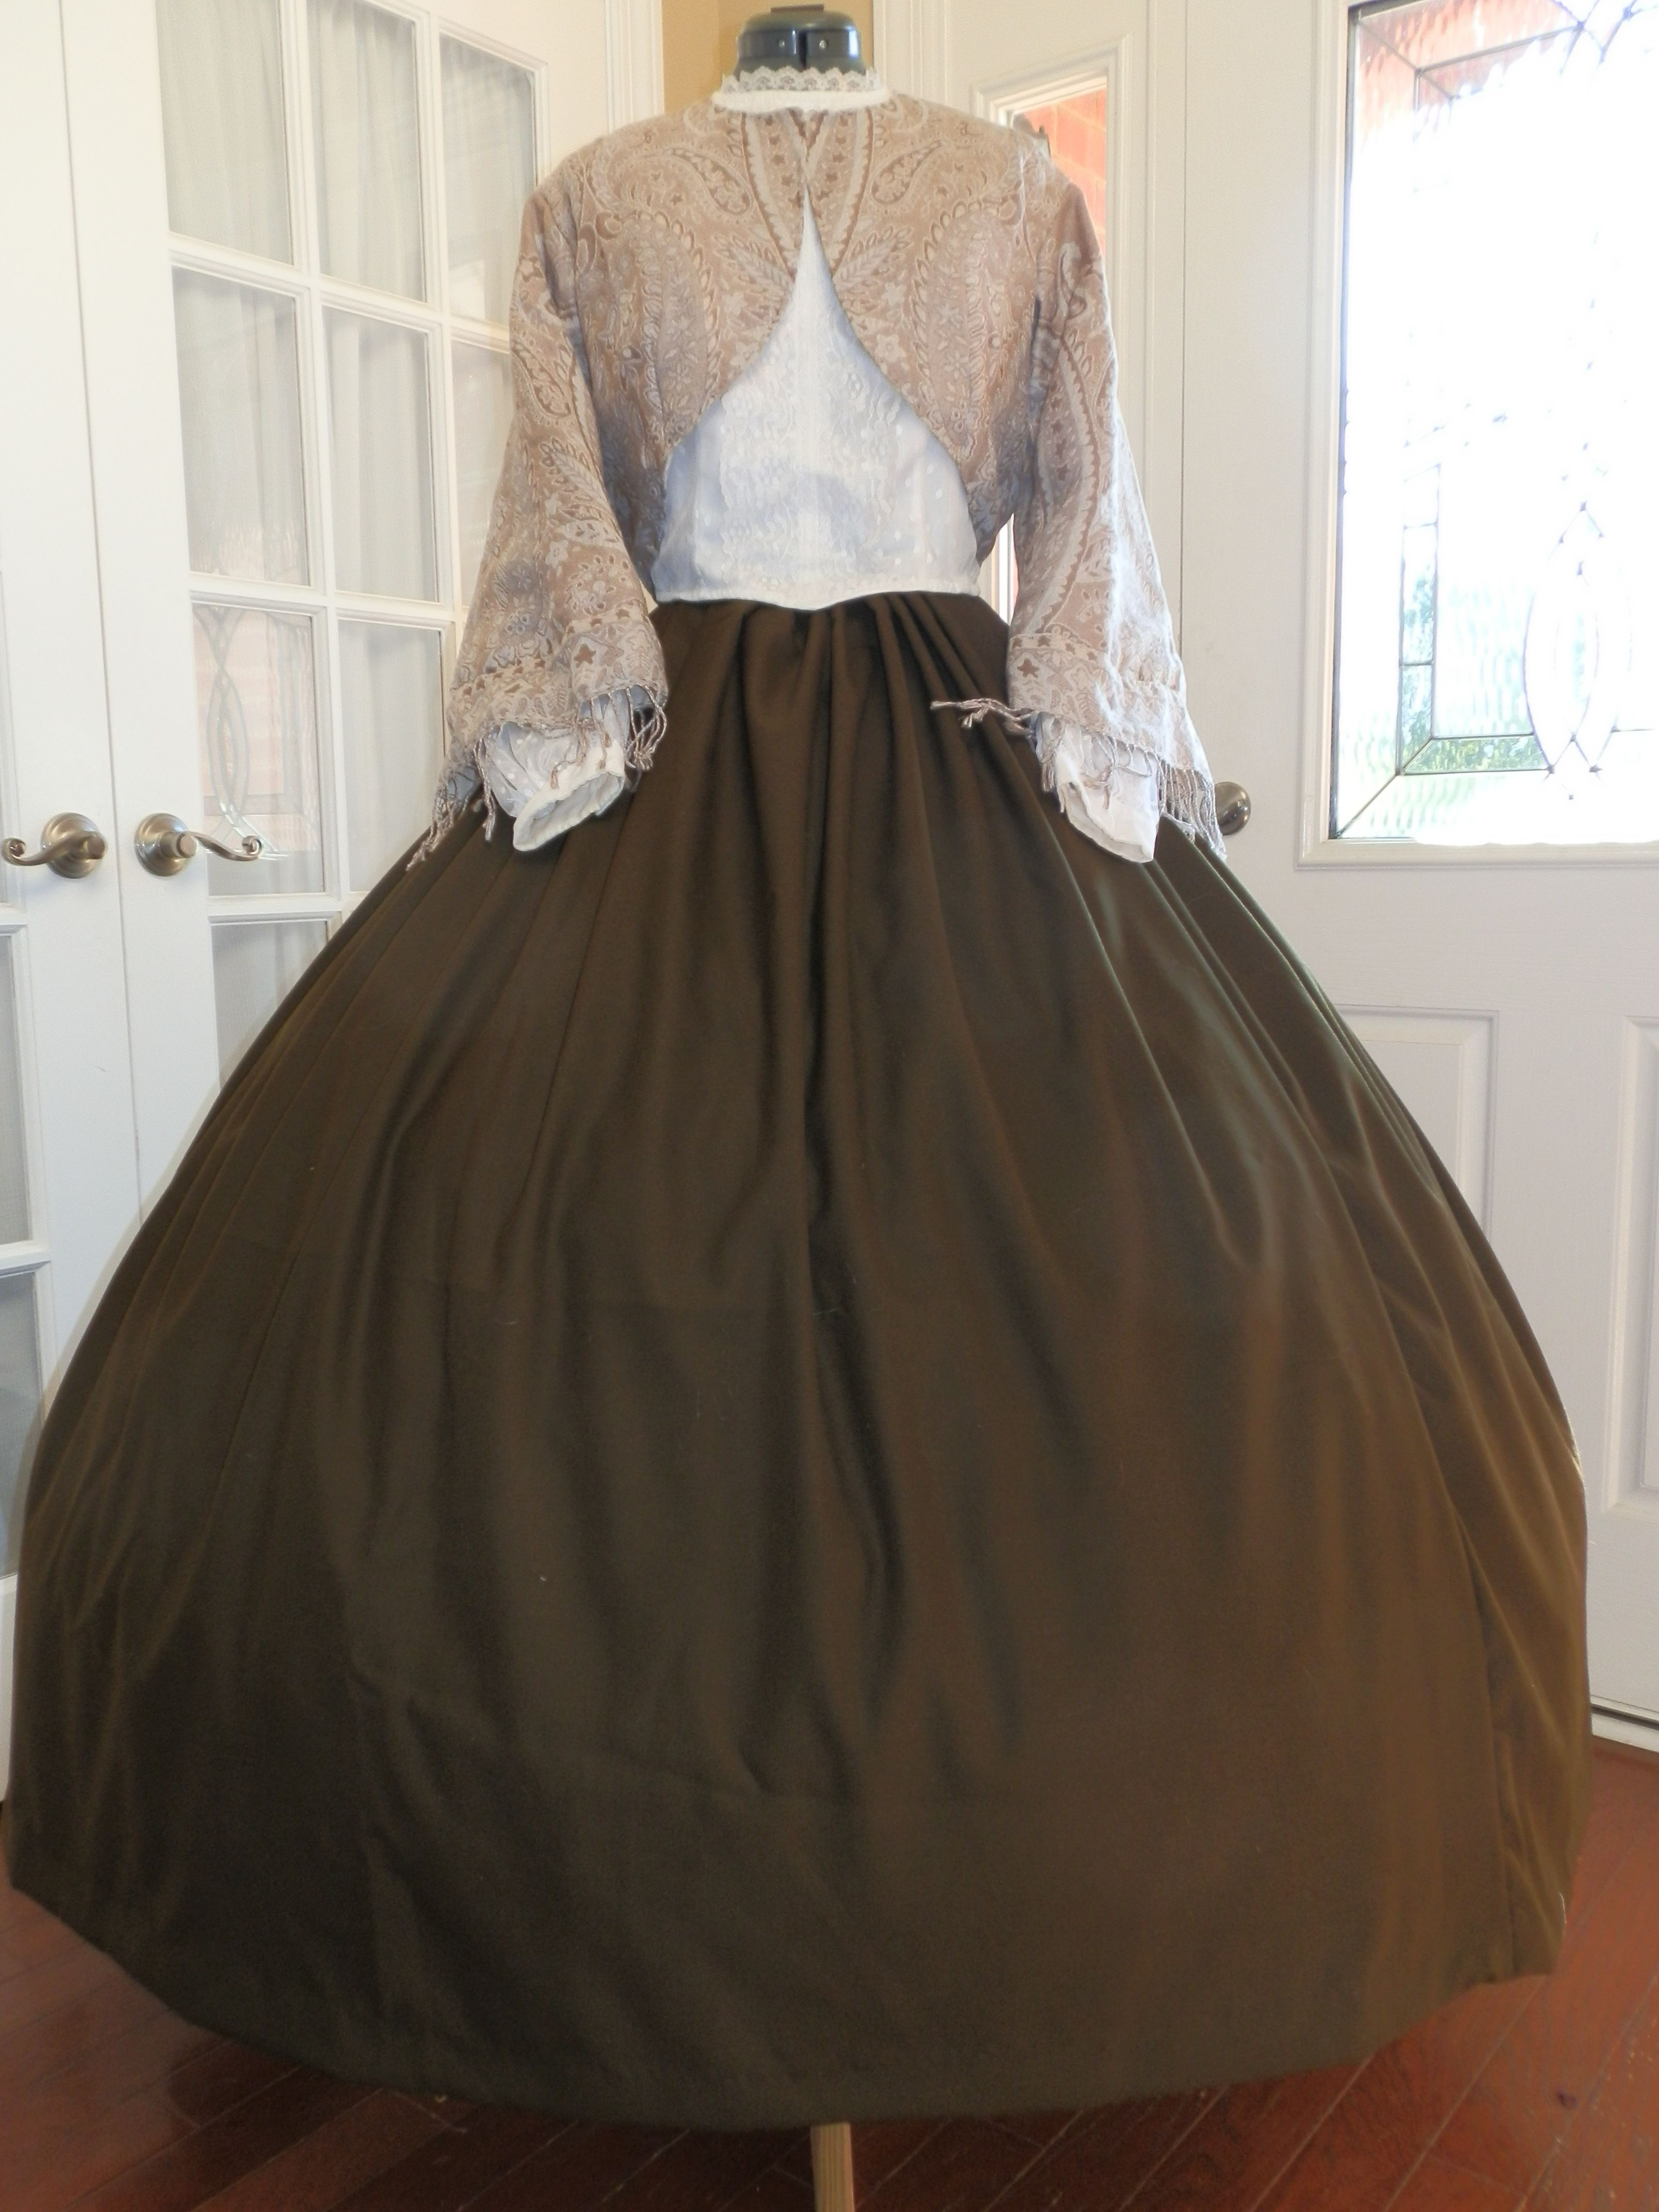 This civil war era zouave and skirt the dark brown skirt is made of